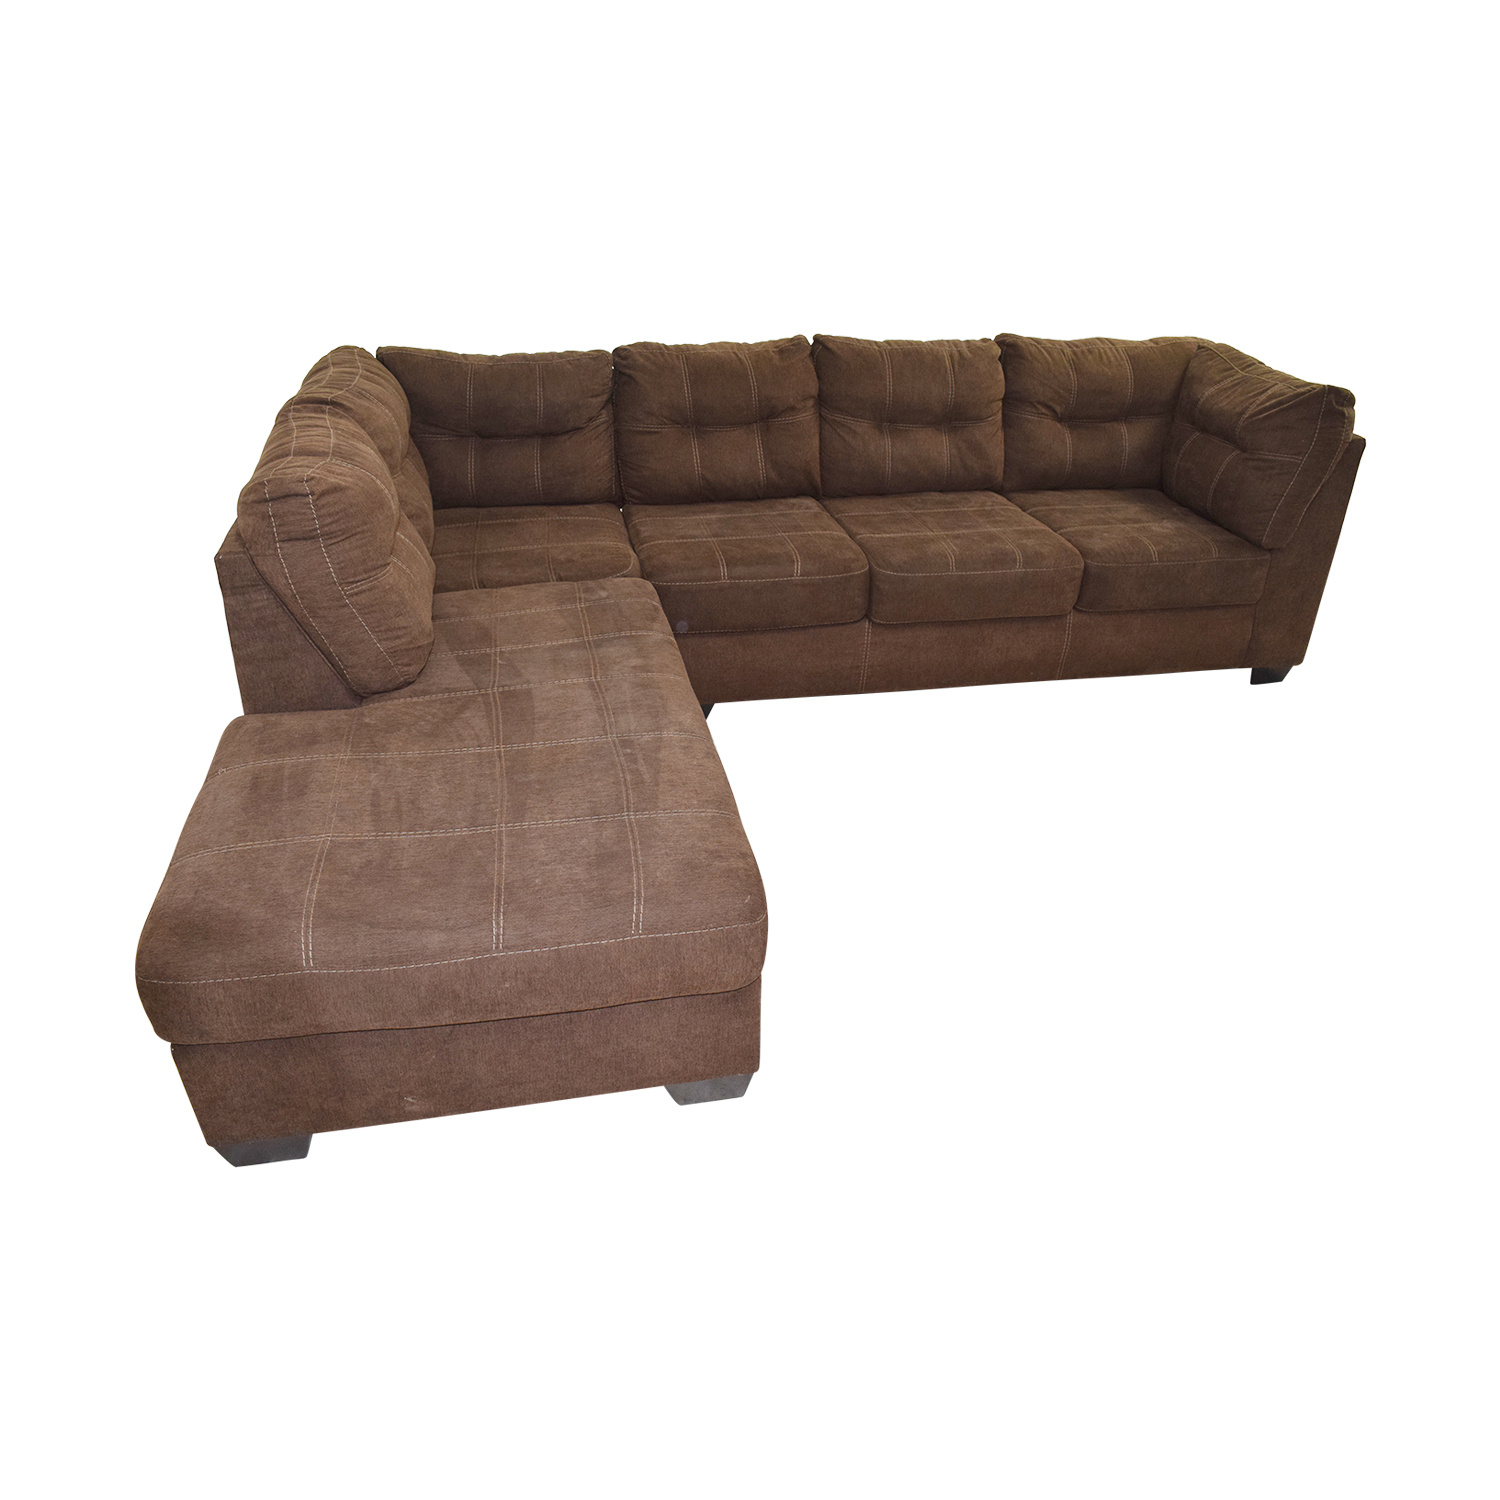 64 off brown l shaped chaise sectional sofa sofas for Brown chaise sofa